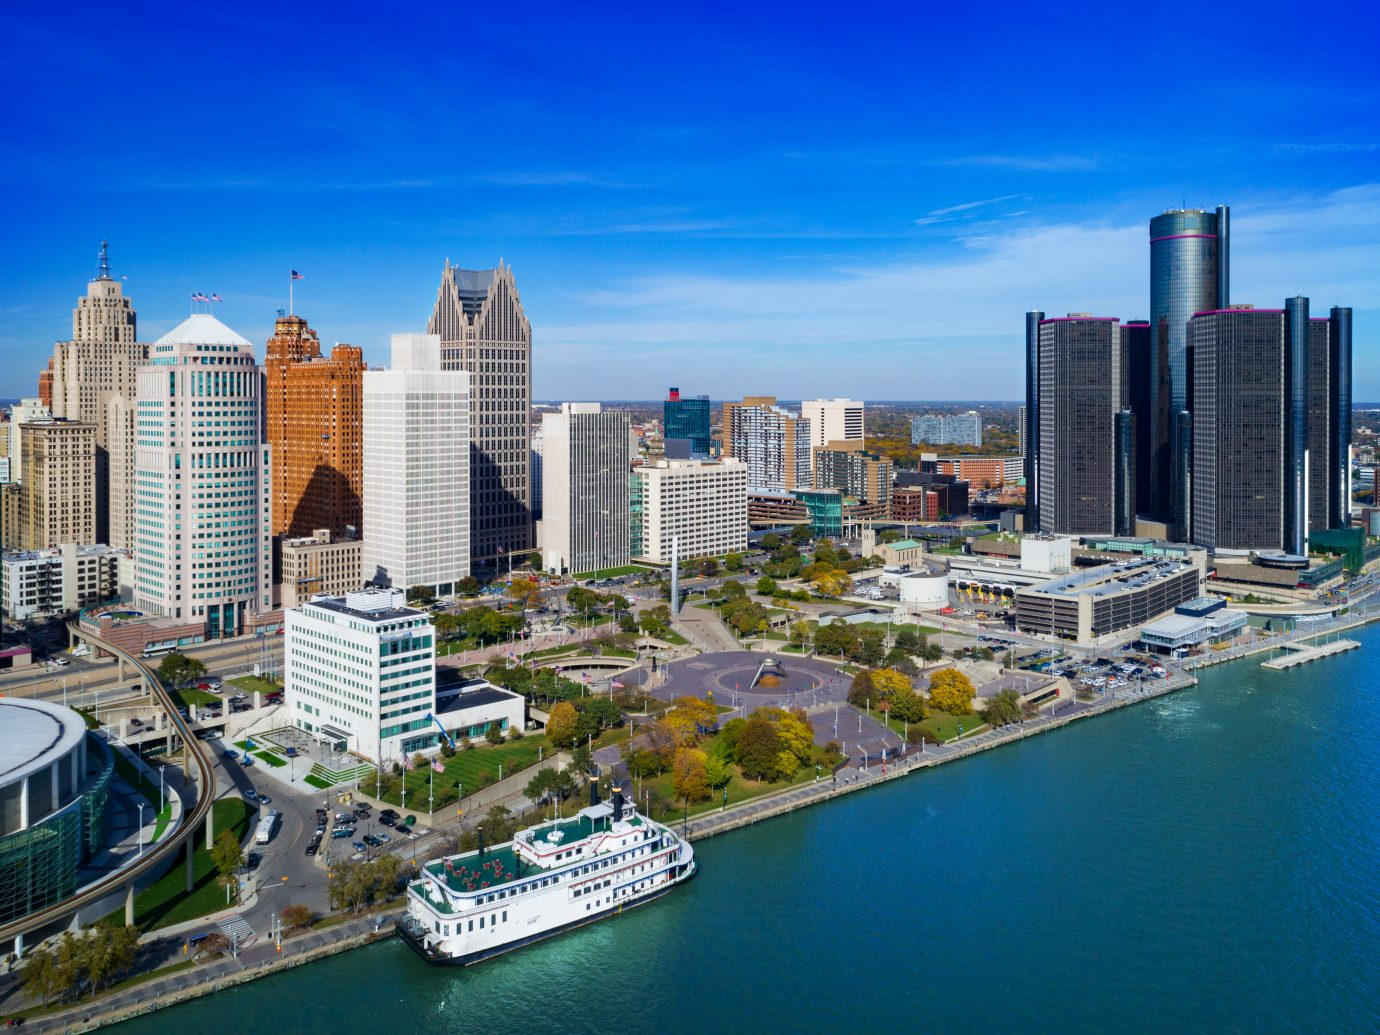 Downtown Detroit Aerial with Detroit River and a riverboat ferry in the foreground.